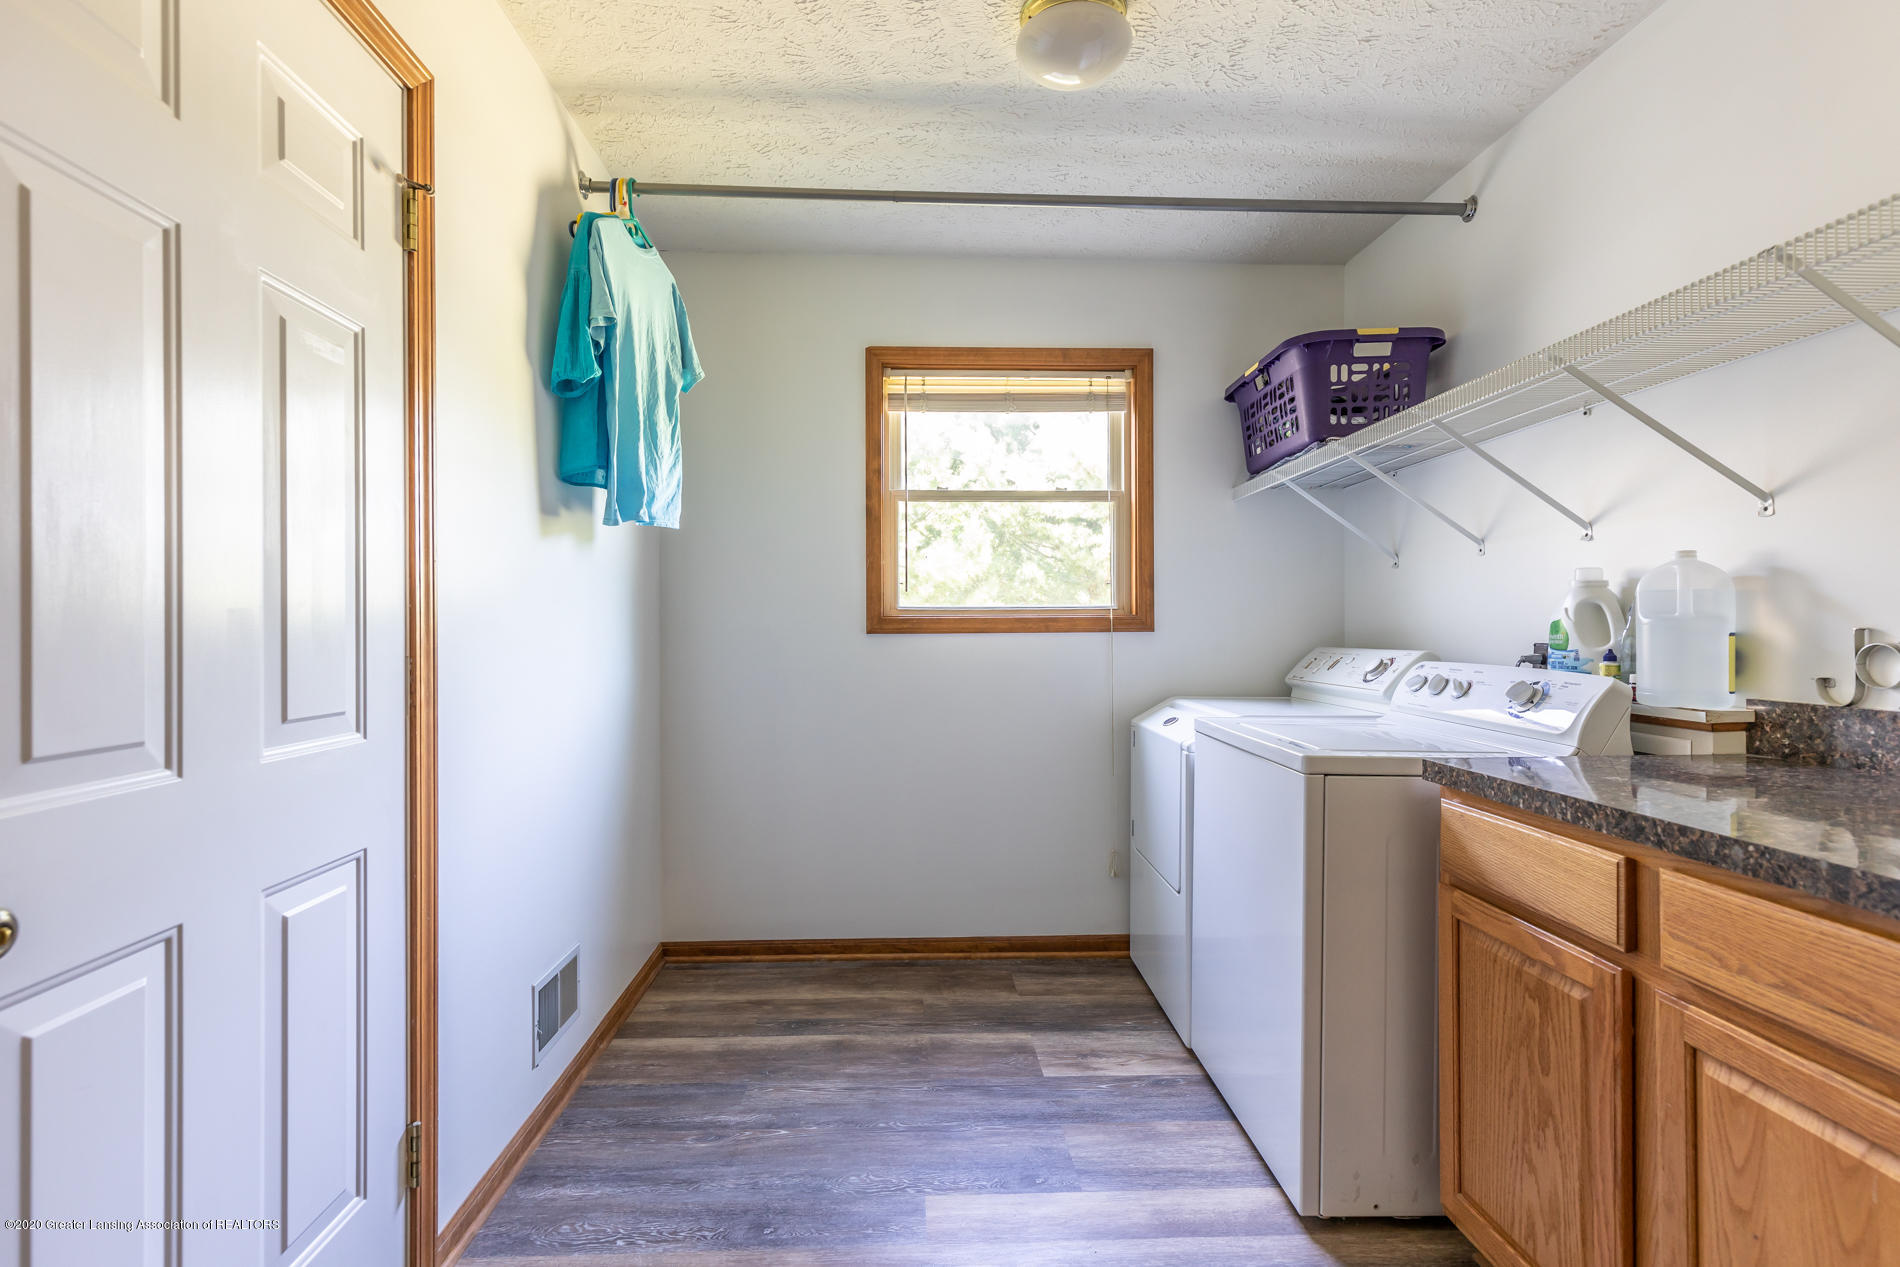 2229 S Chester Rd - Laundry room - 17